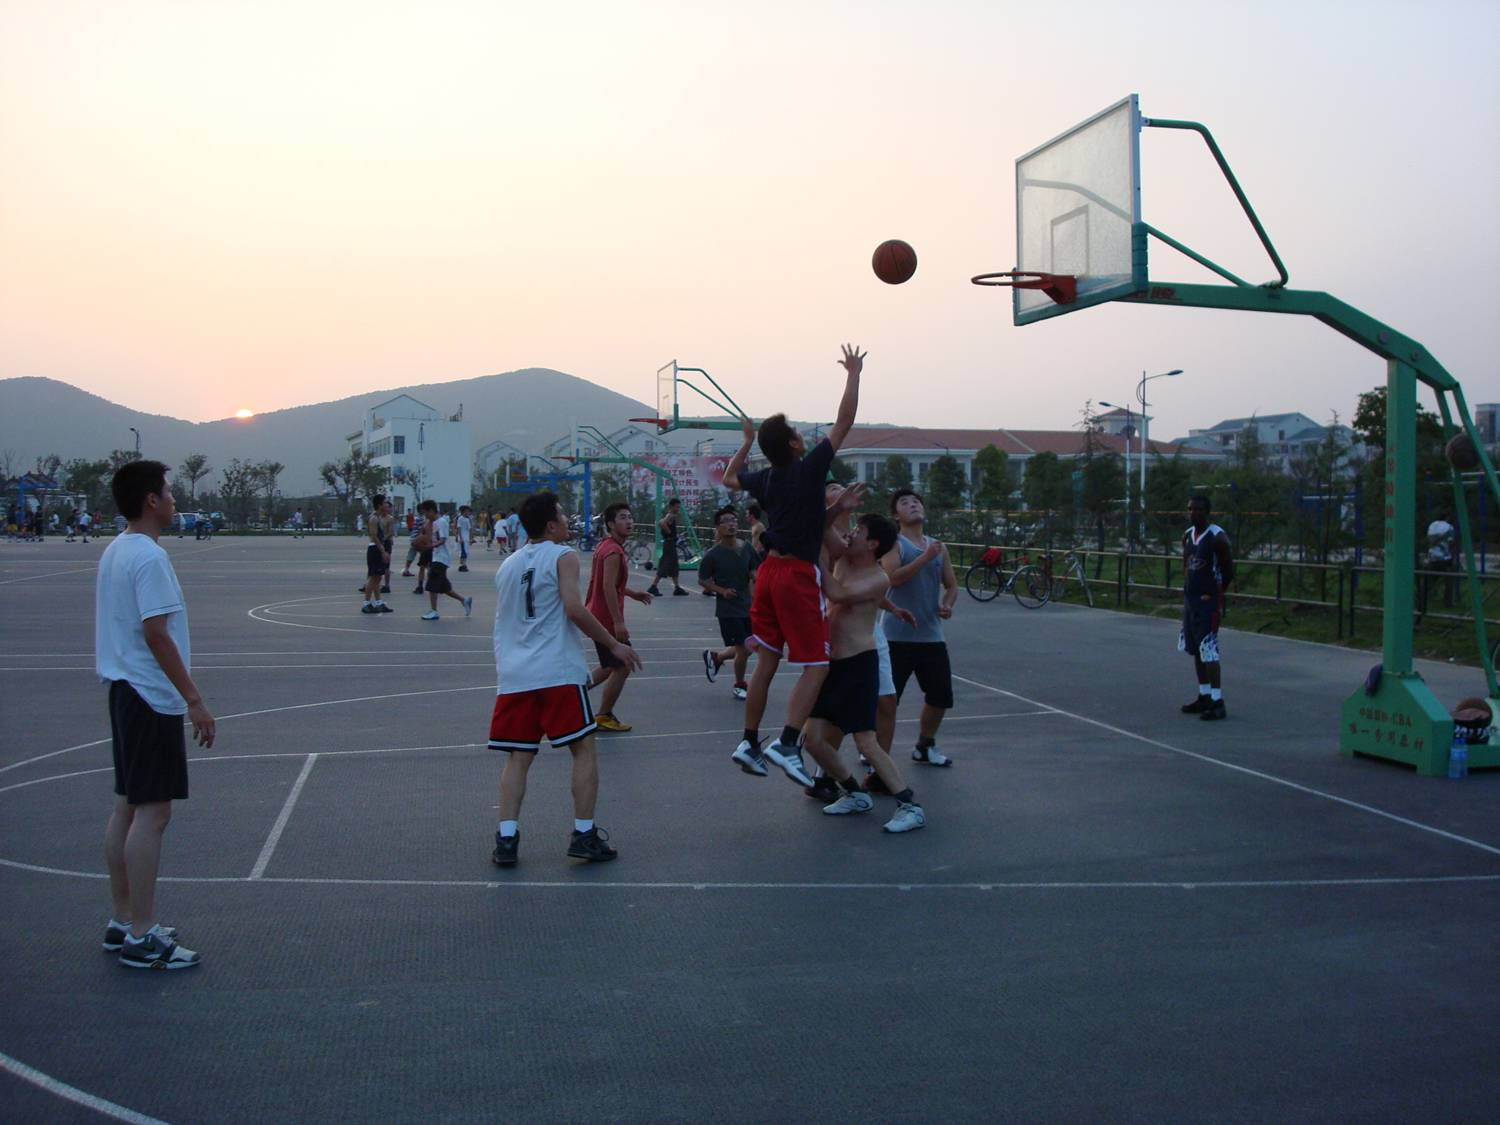 outdoor basketball practice,  Jiangnan University,  Wuxi,  China